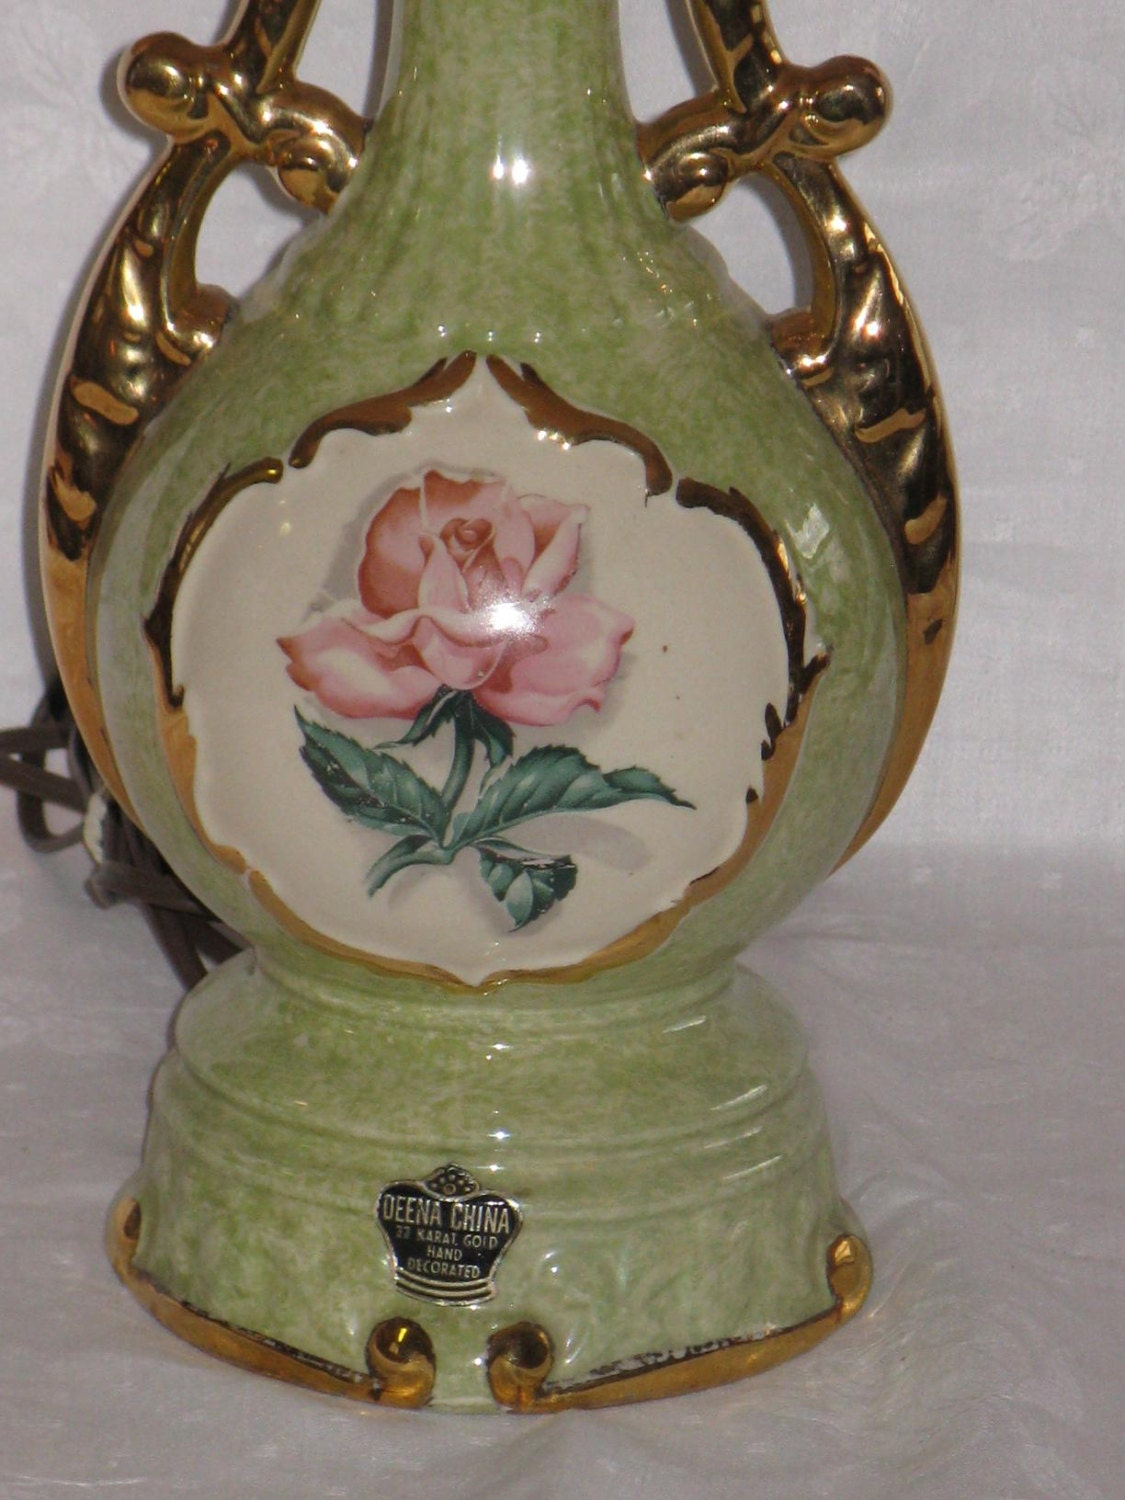 Vintage Antique Deena China Hand Decorated Green Table Lamp